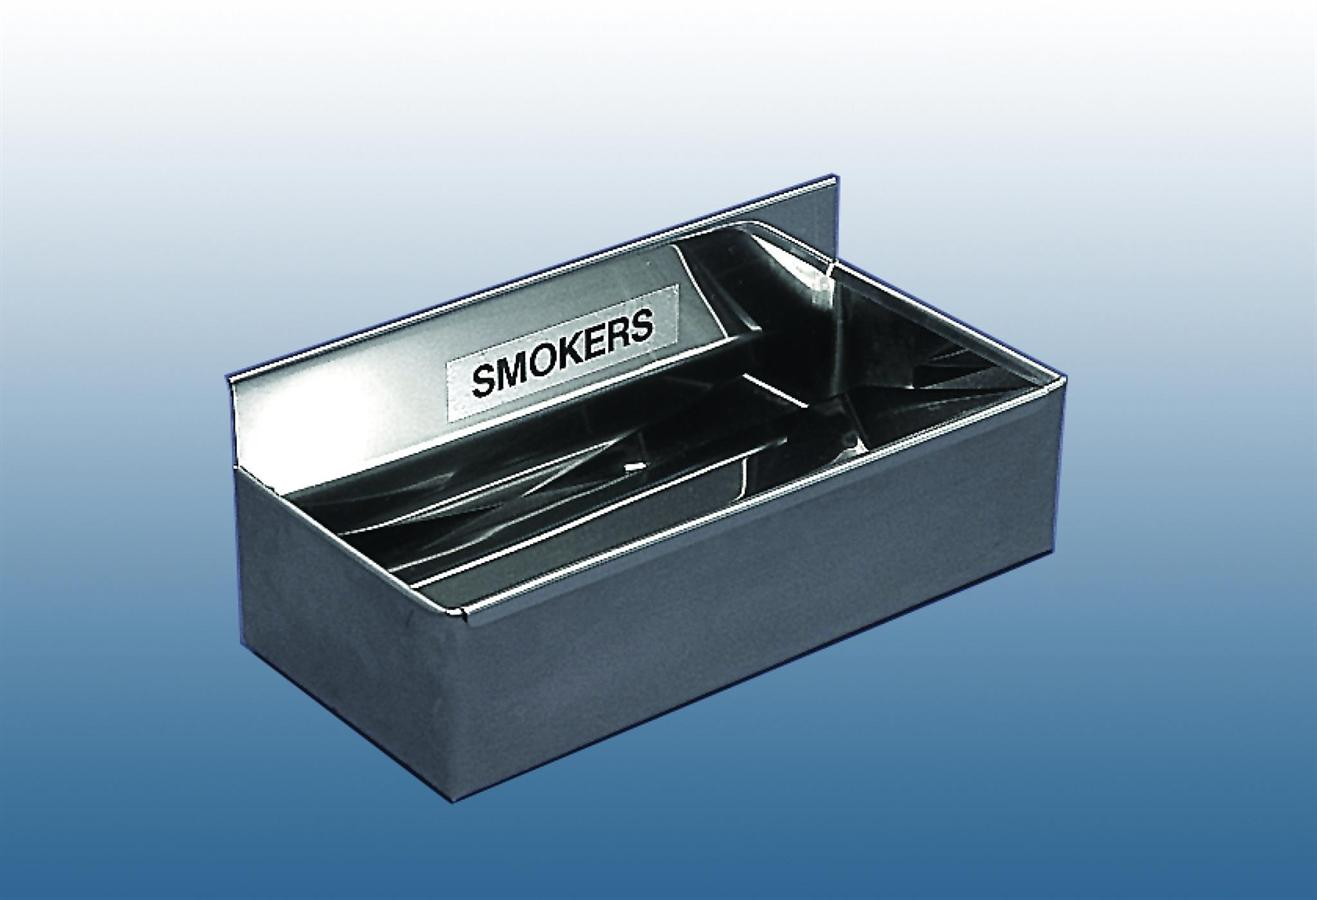 Ca7 Smokers Ashtray Furniture For Public Spaces Street